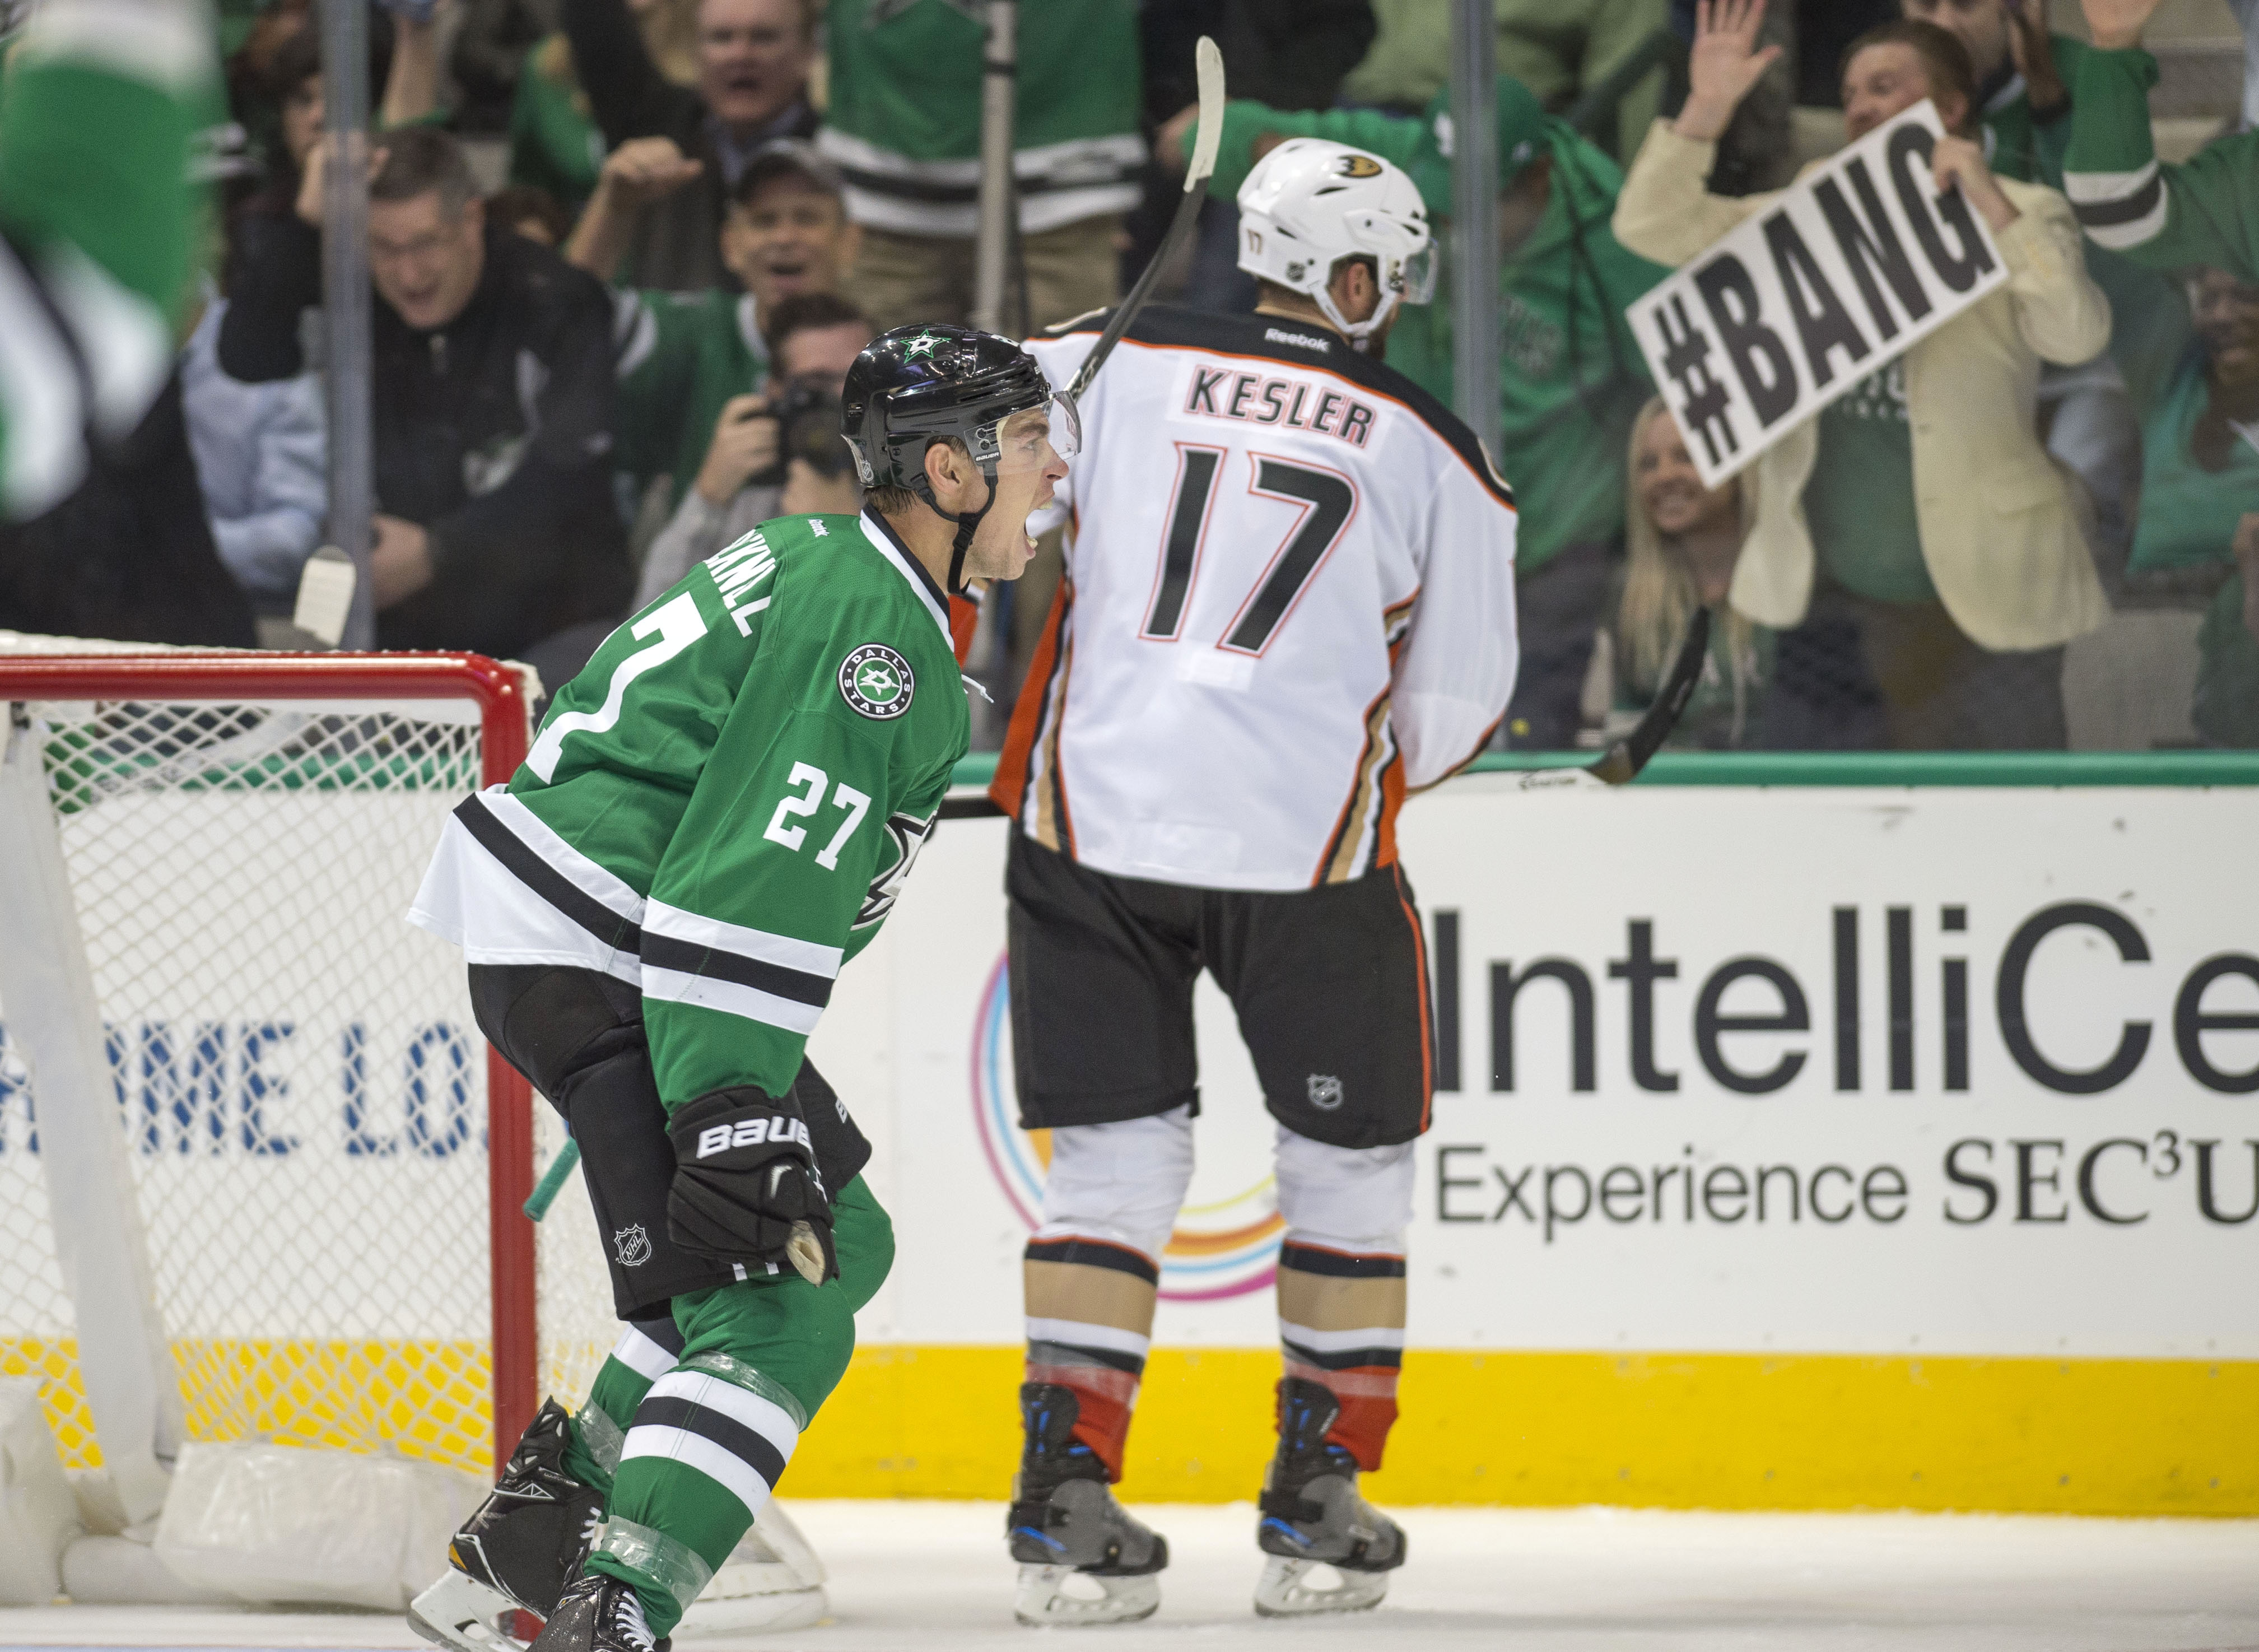 9604821-nhl-anaheim-ducks-at-dallas-stars